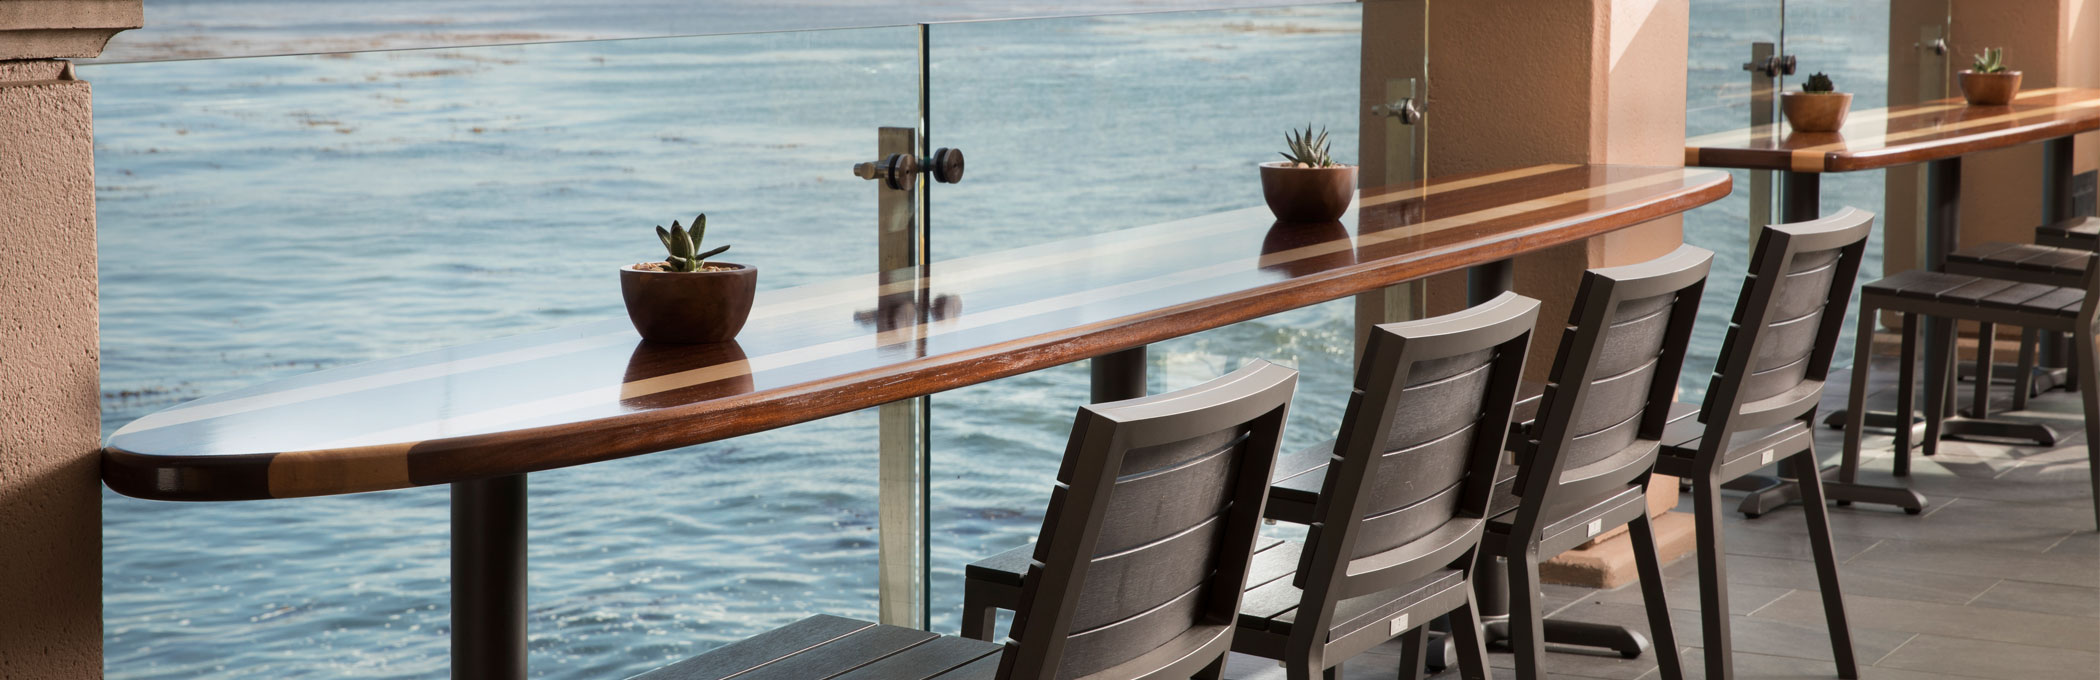 dining table overlooking the ocean on a terrace